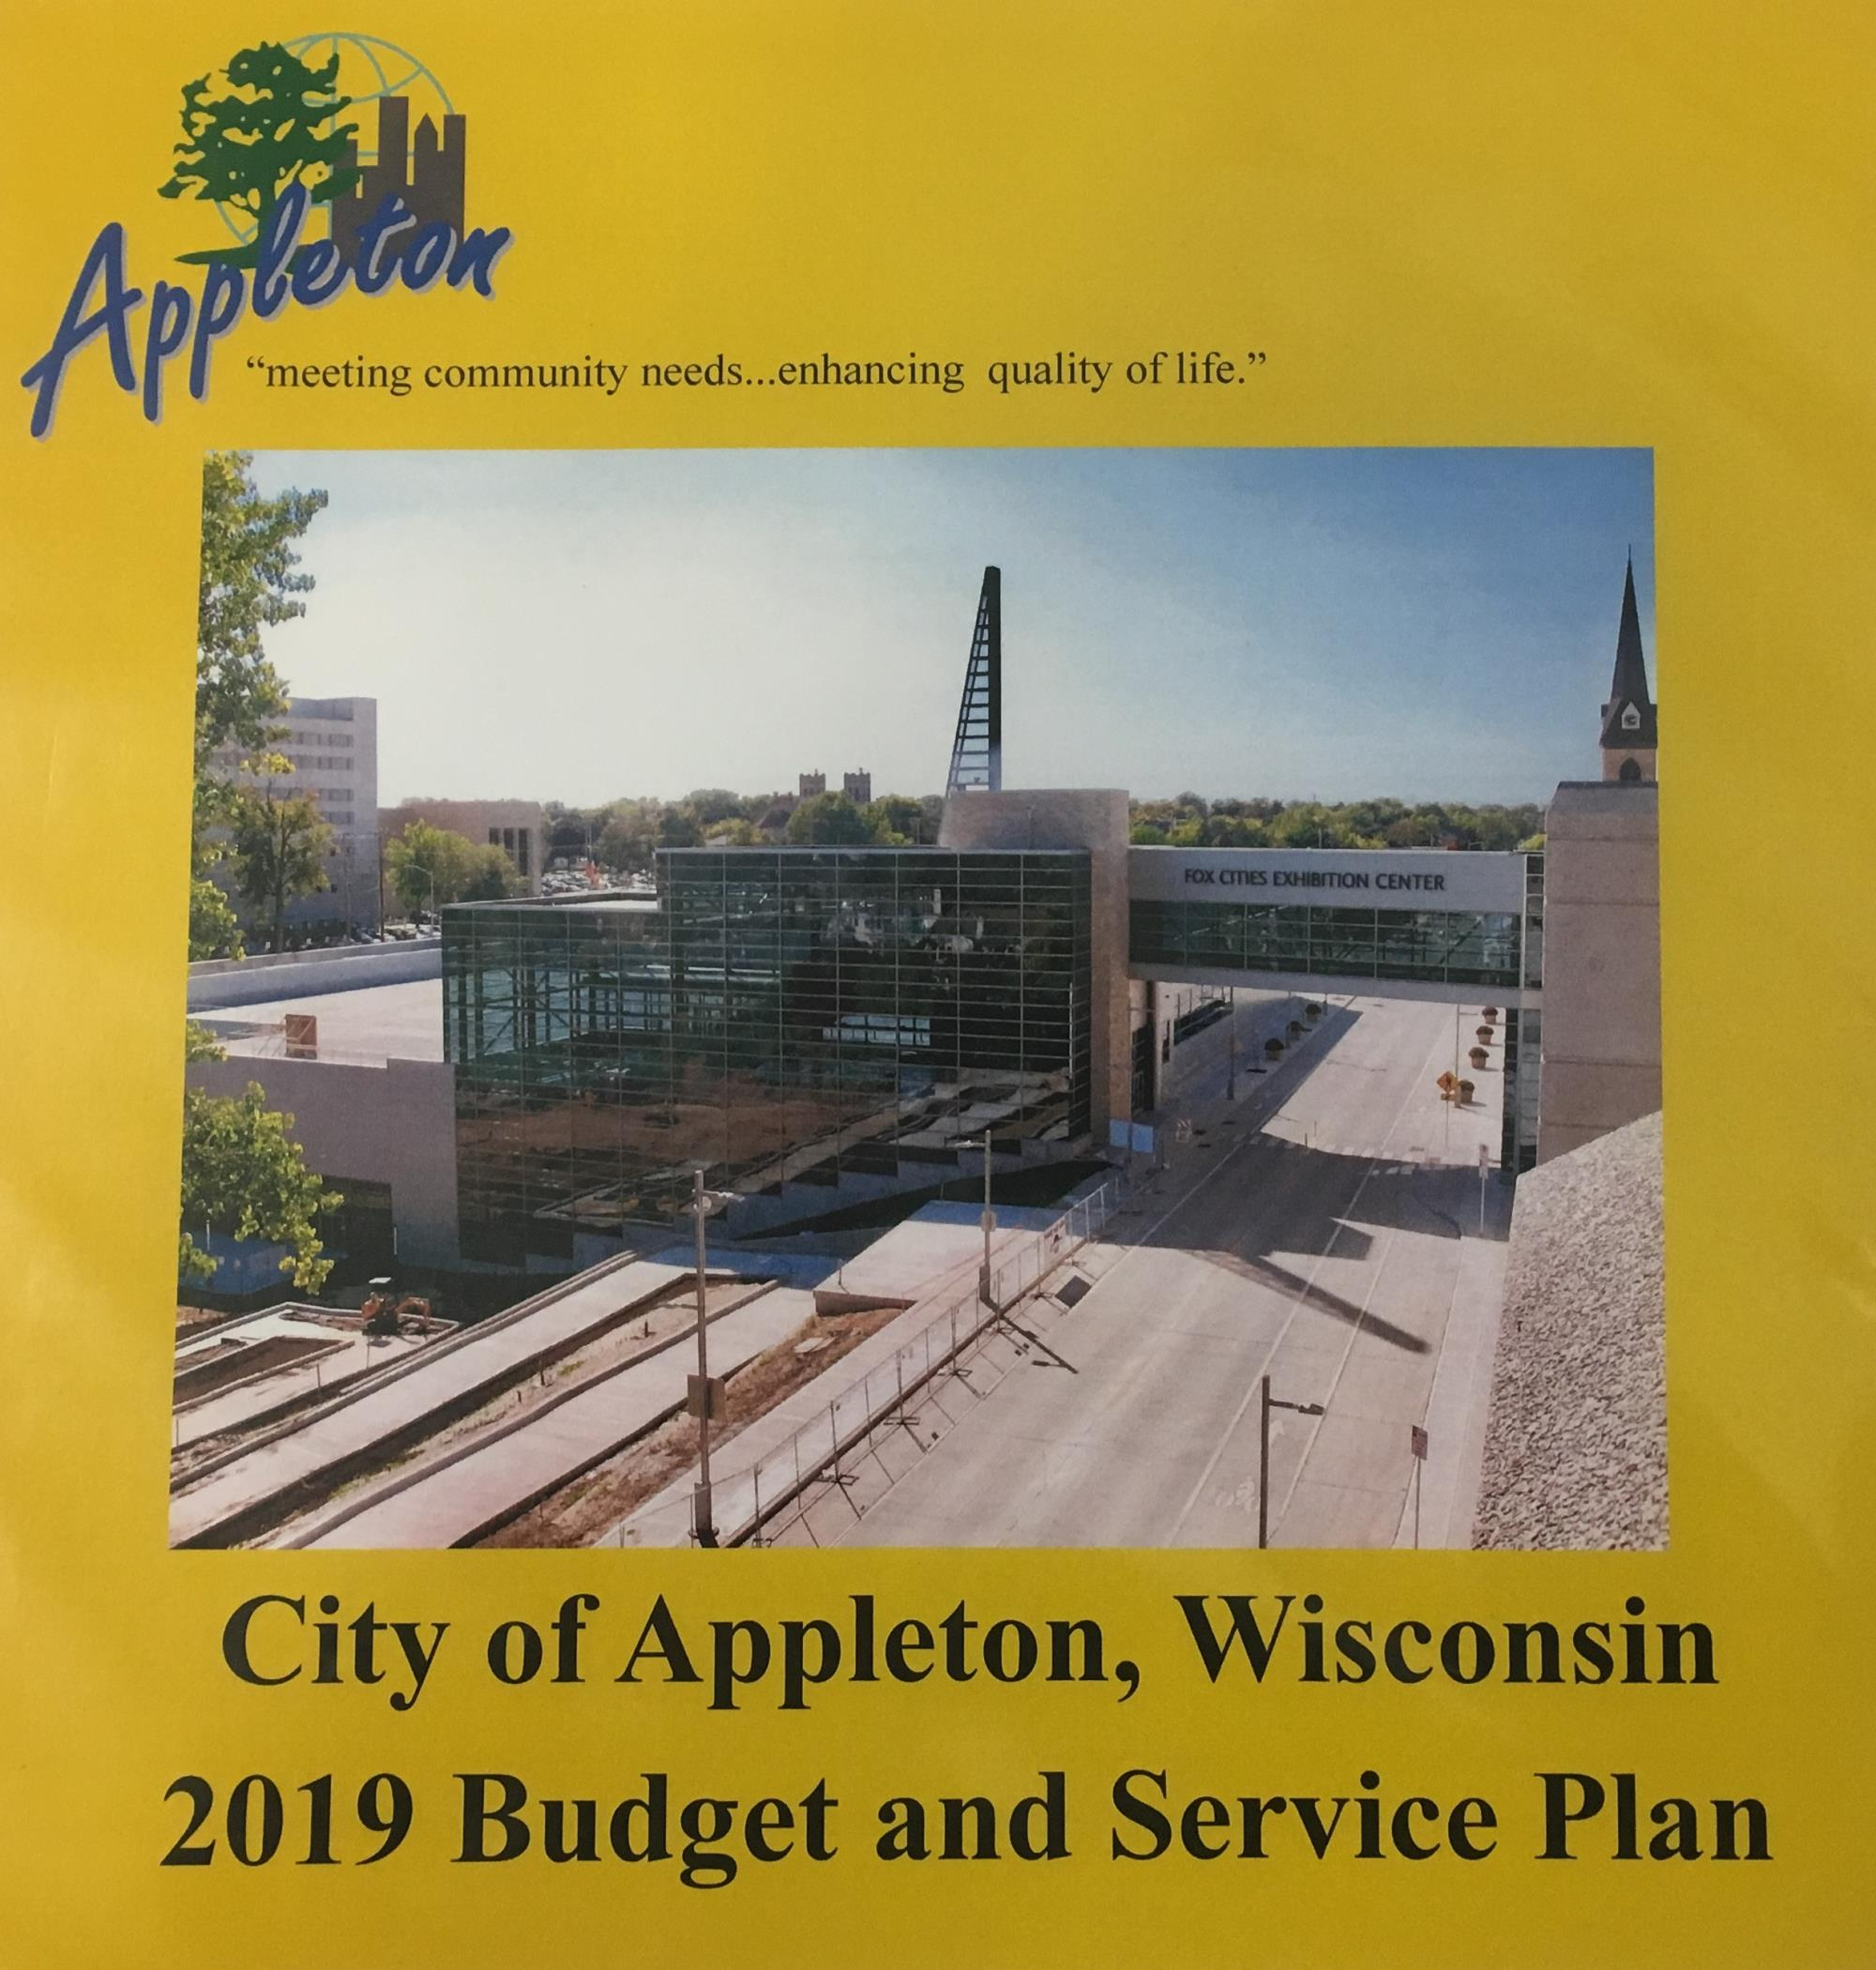 Mayor Hanna releases proposed 2019 budget